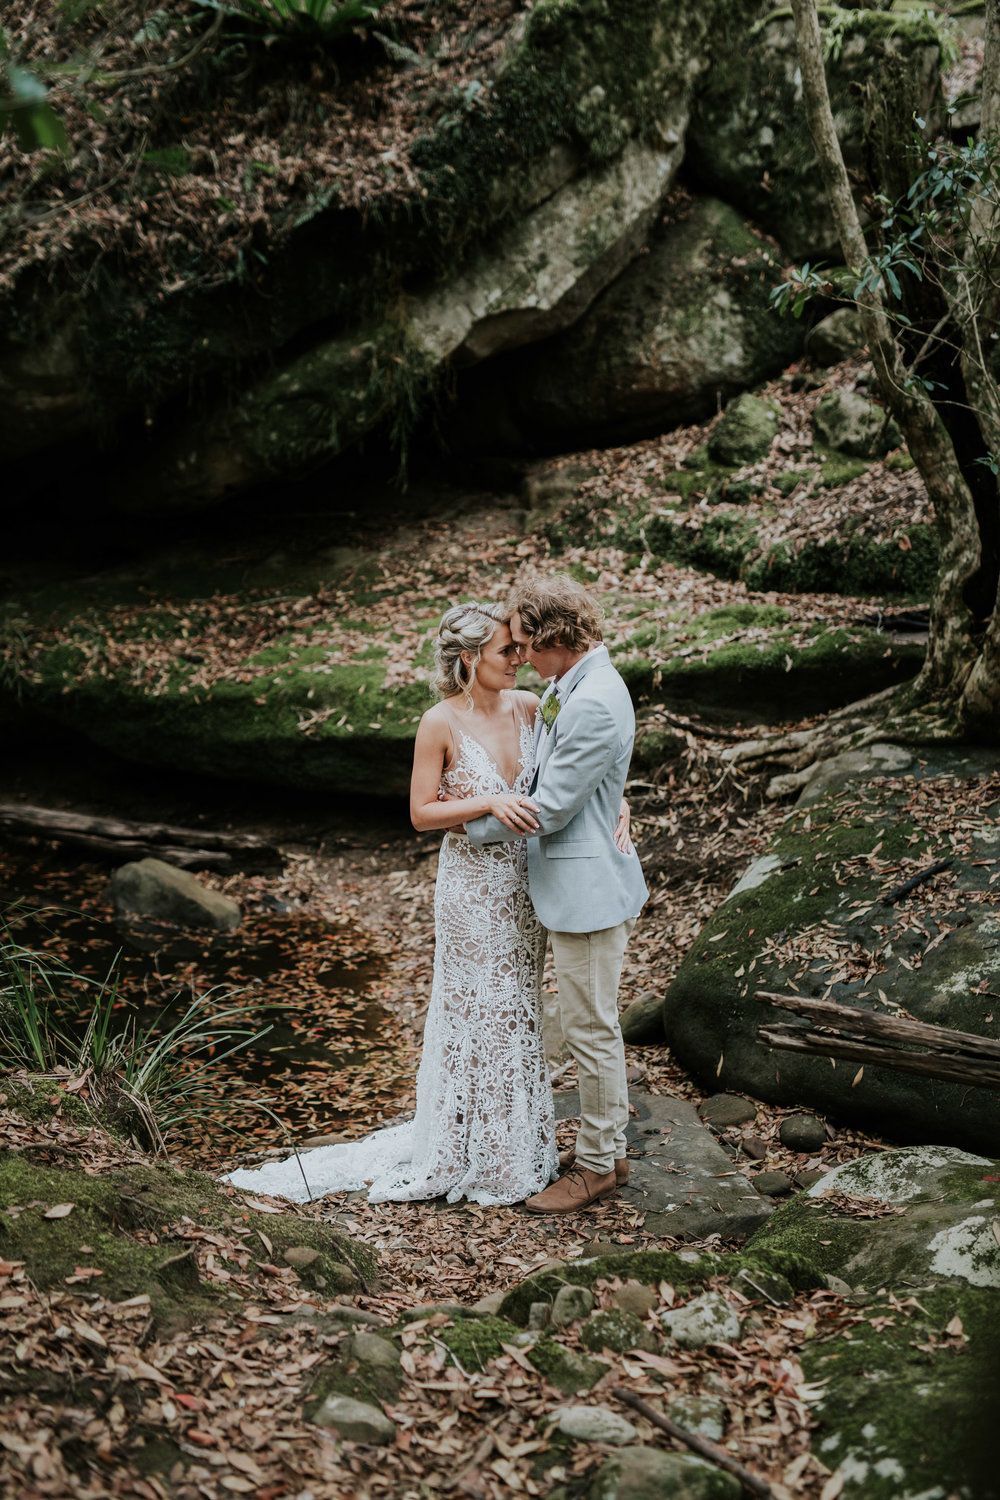 Jesse+Matt+Kangaroo+Valley+Wildwood+Boho+Relaxed+wedding+-146.jpg